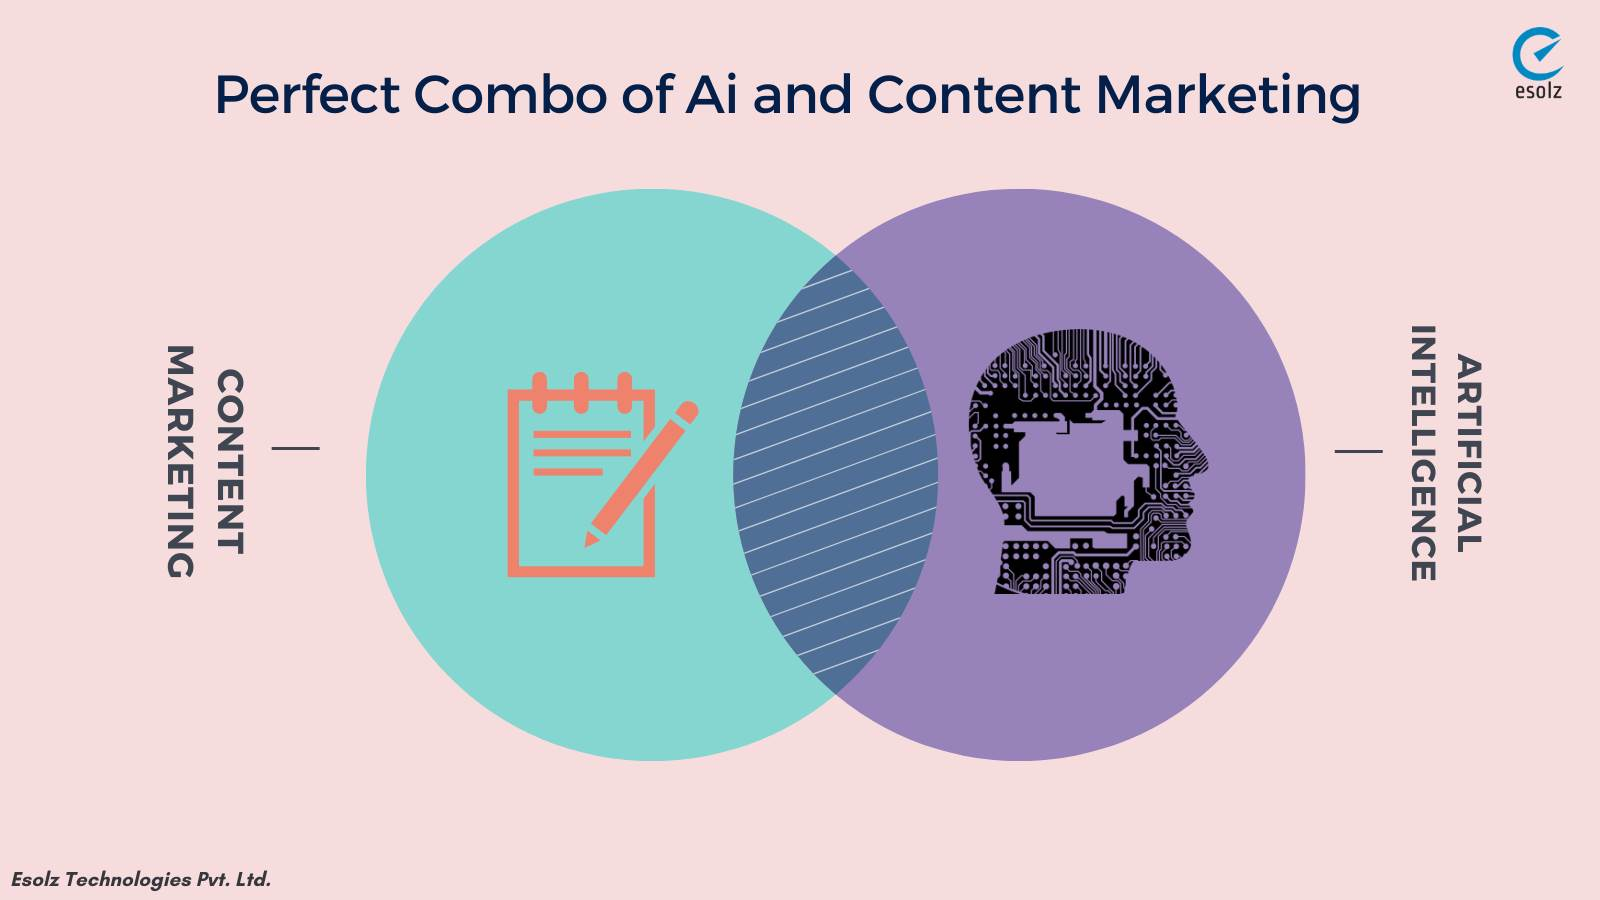 The Perfect Combo of Content Marketing and Artificial Intelligence